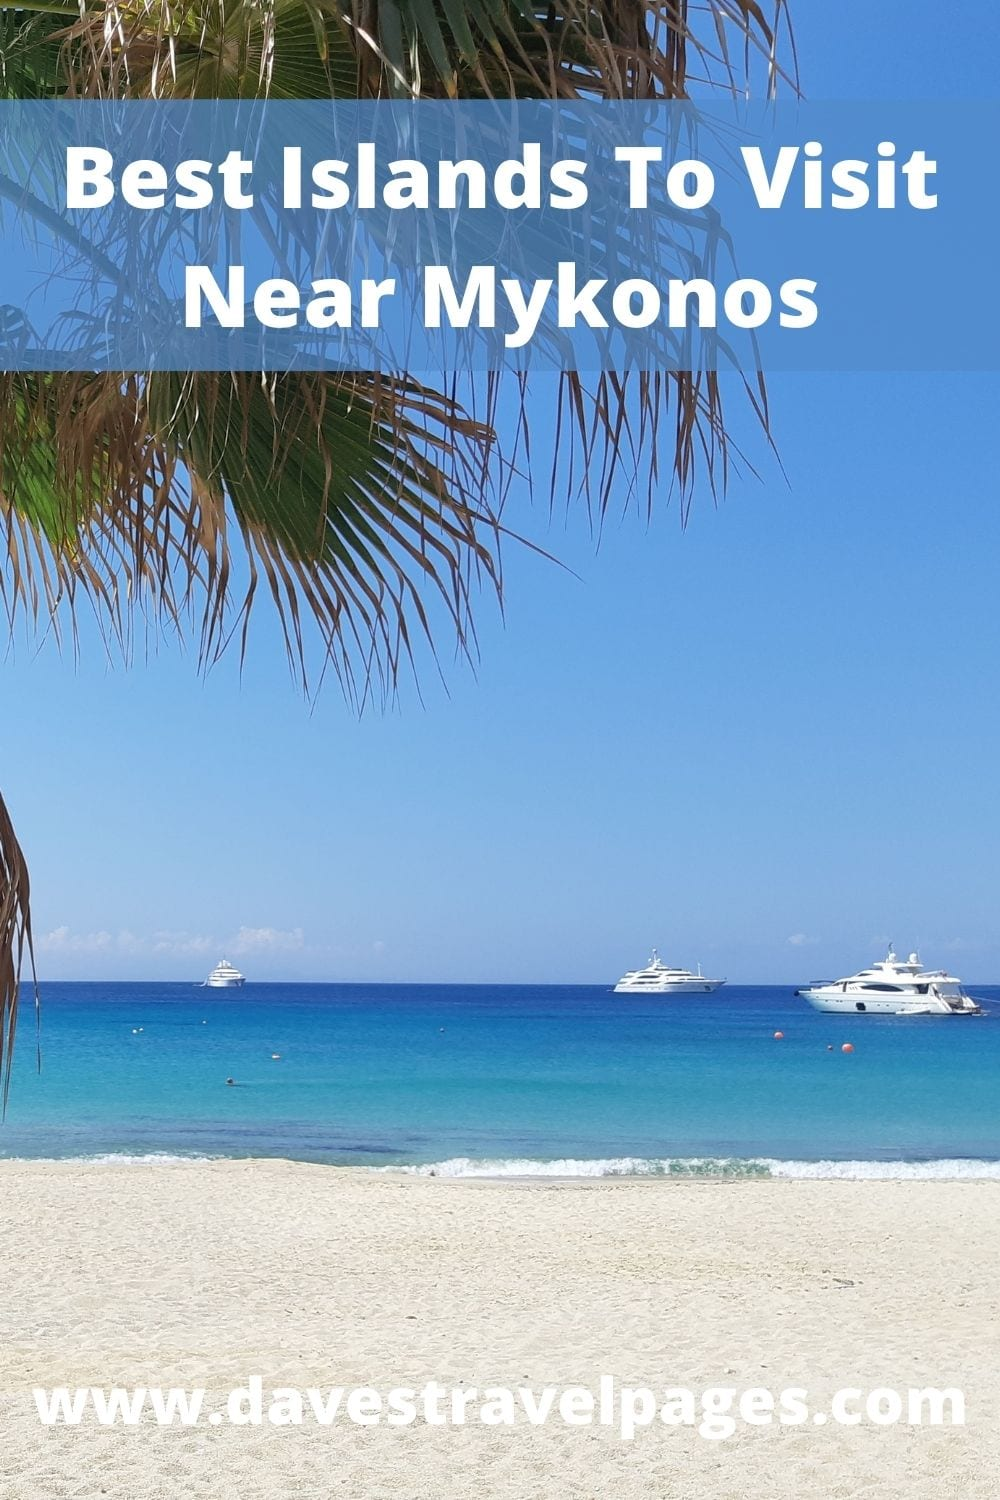 Best islands to visit near Mykonos in Greece